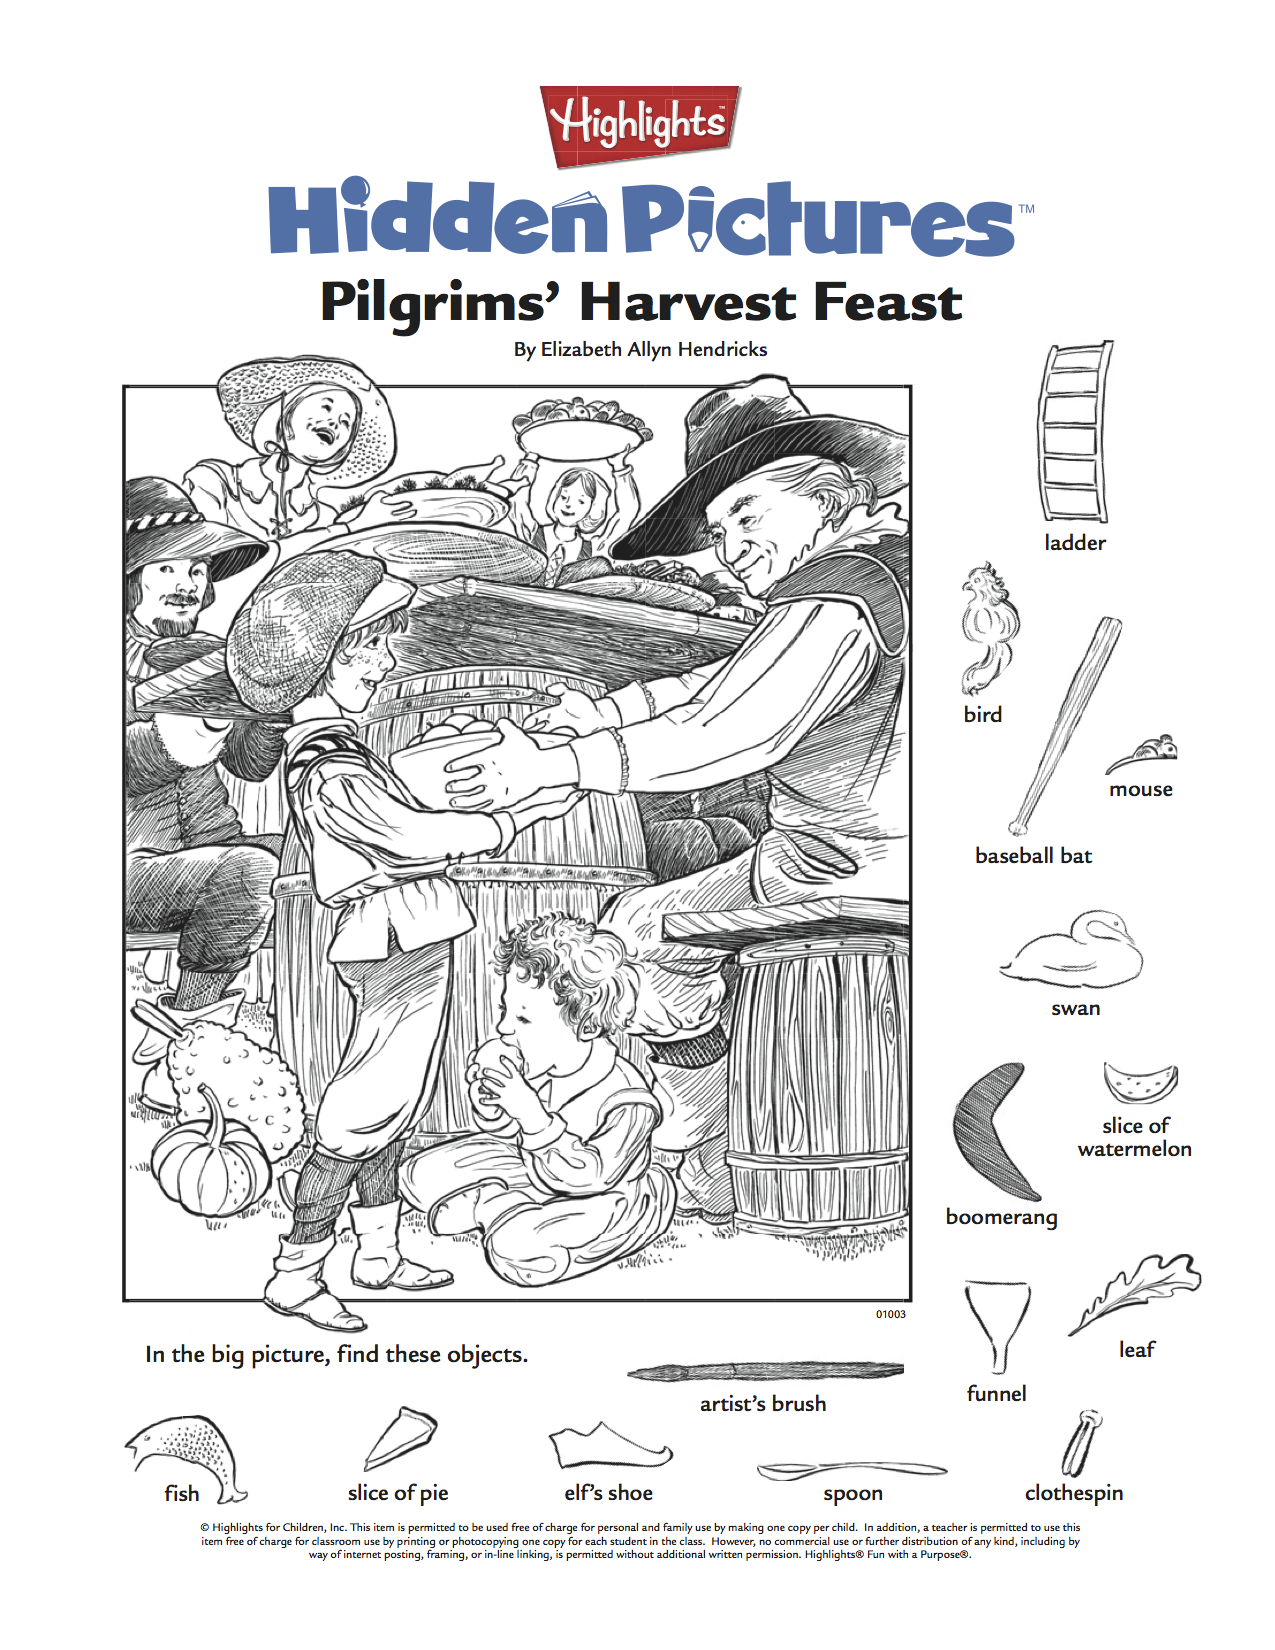 Thanksgiving Hidden Pictures Puzzle Printable For Kids